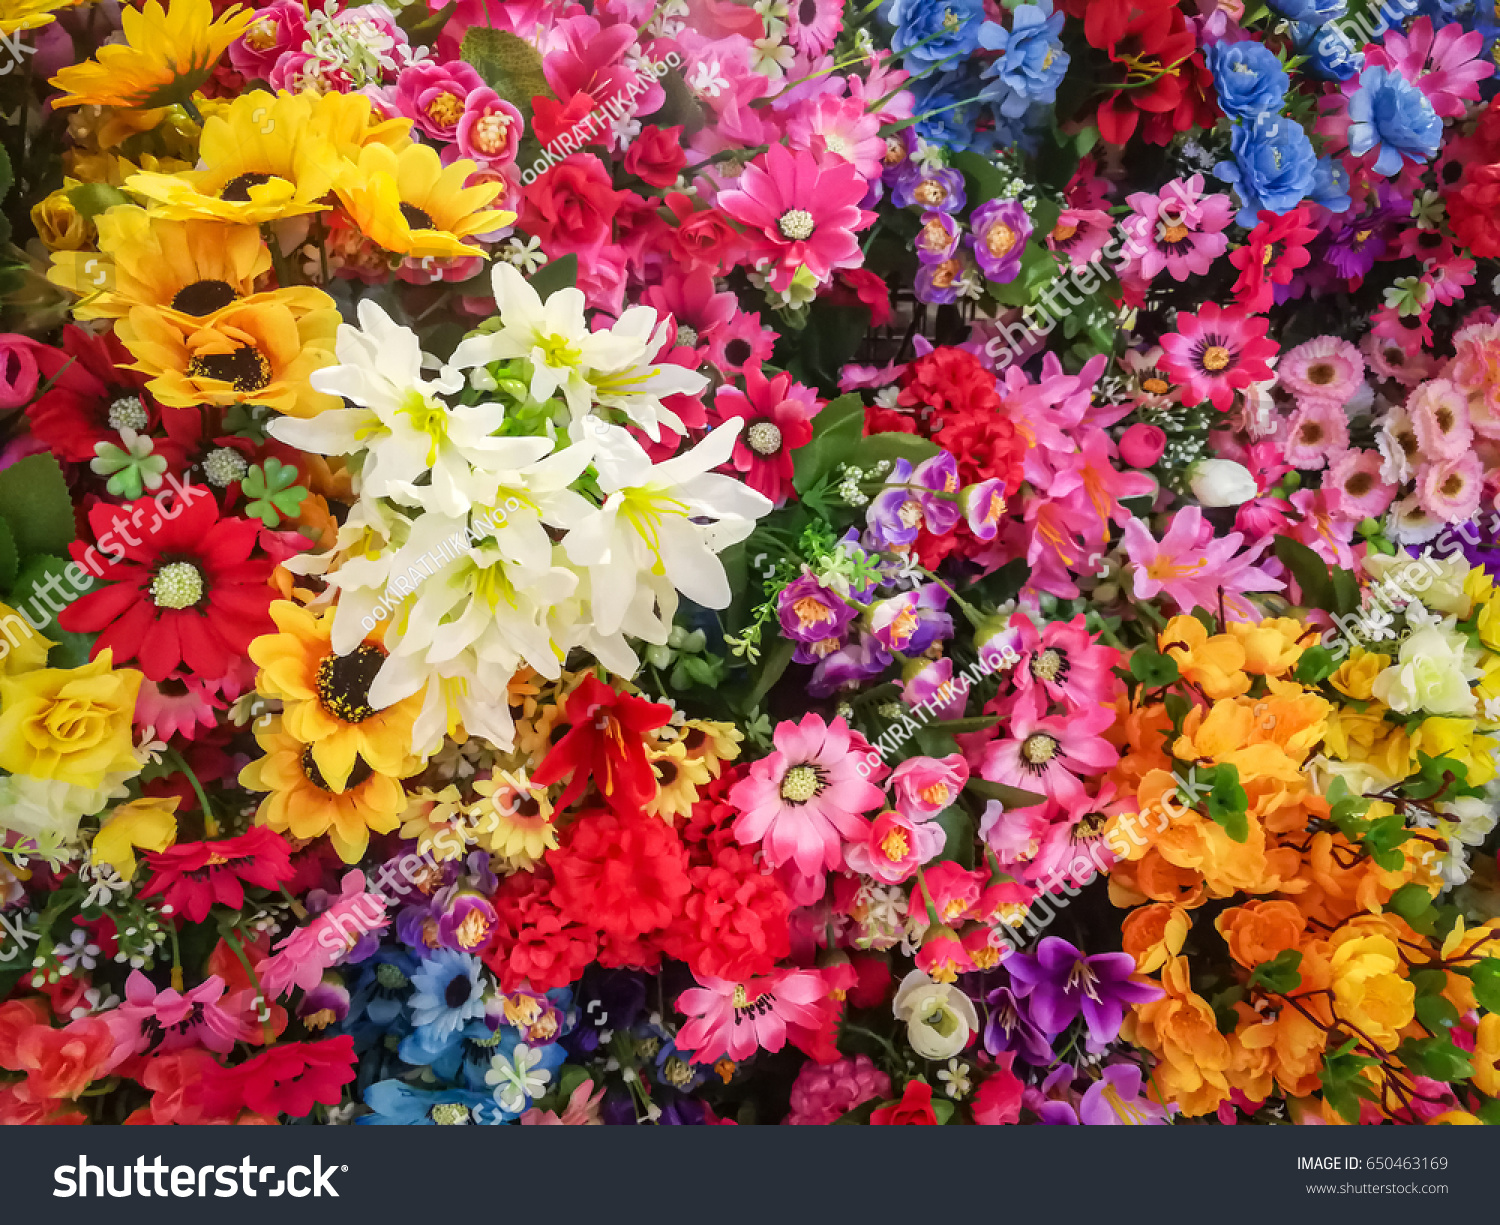 Fake flowers beautiful background decor plastic stock photo edit fake flowers beautiful background for decor plastic flowers izmirmasajfo